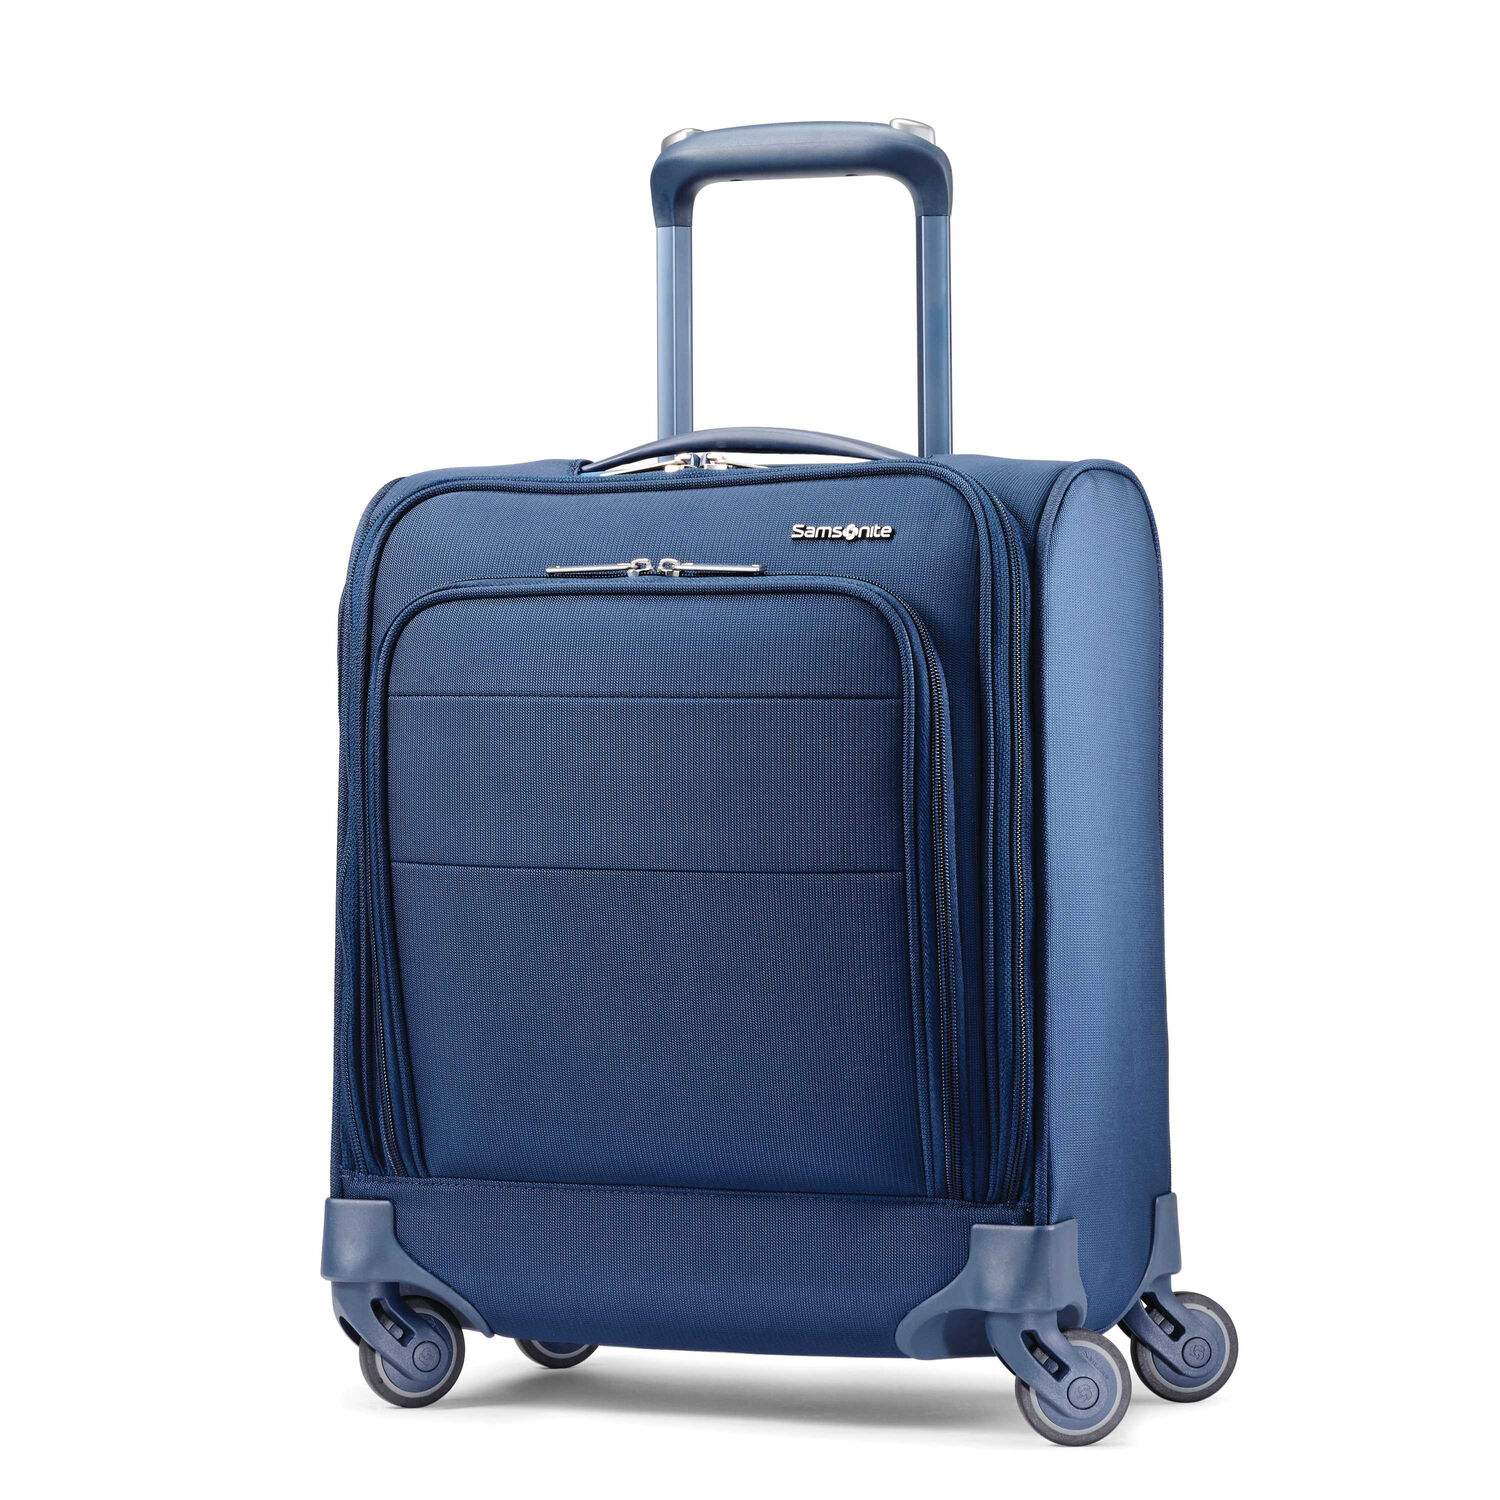 Samsonite Flexis Underseater Carry-On Spinner in the color Carbon Blue.